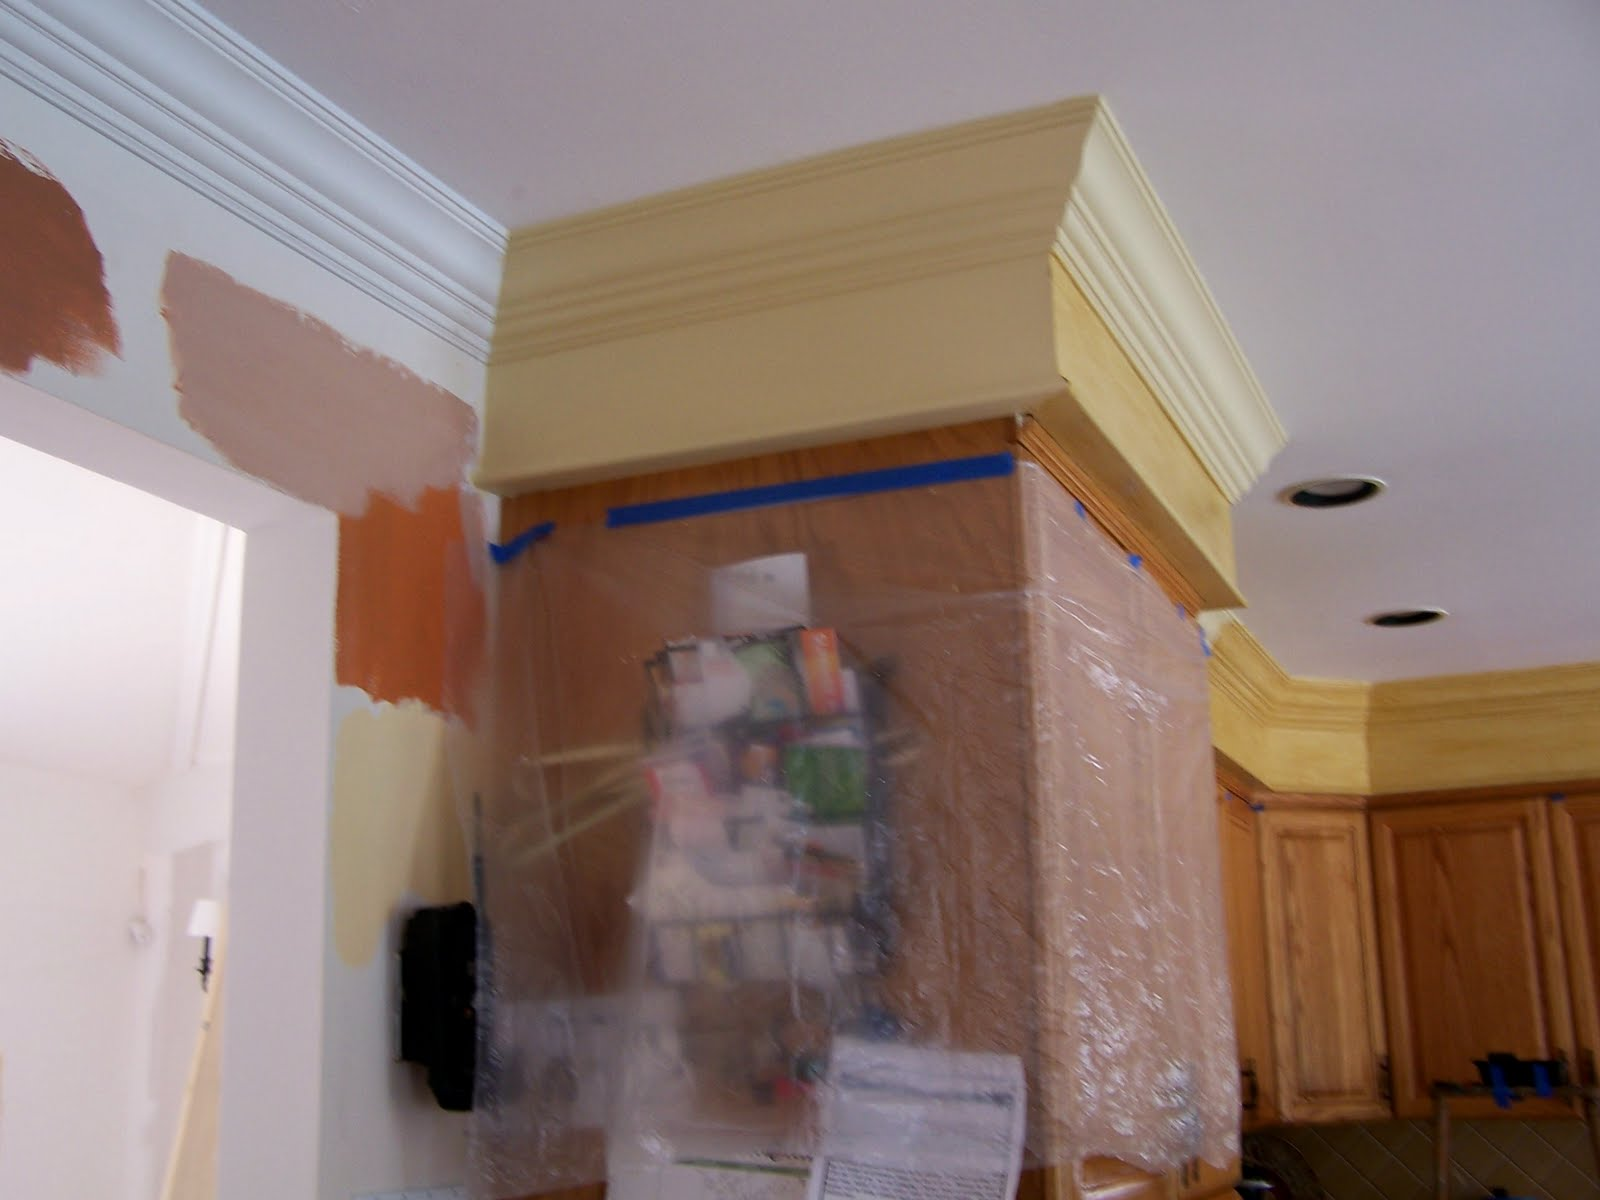 Kitchen Cabinet Makeover: From Drab to Fab - The Colorful ...